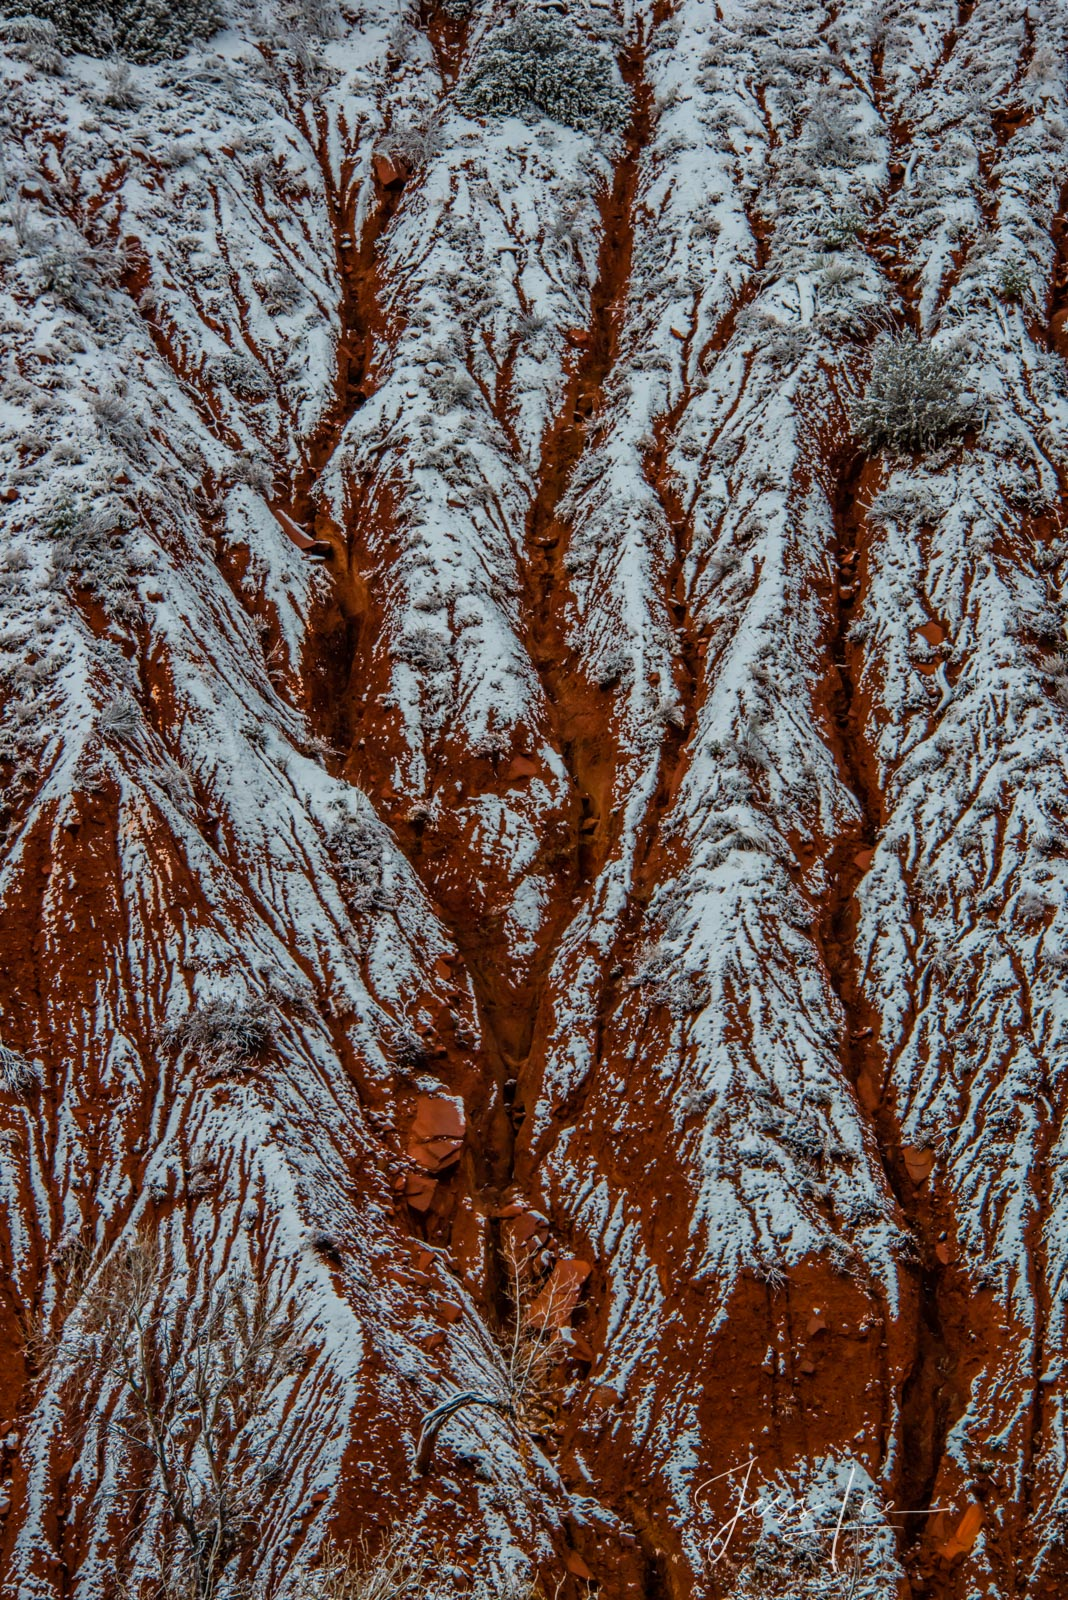 Limited Edition of 50 Exclusive high-resolution Museum Quality Fine Art Photography Prints of Red Winter Ridges Zion in Red Rocks...